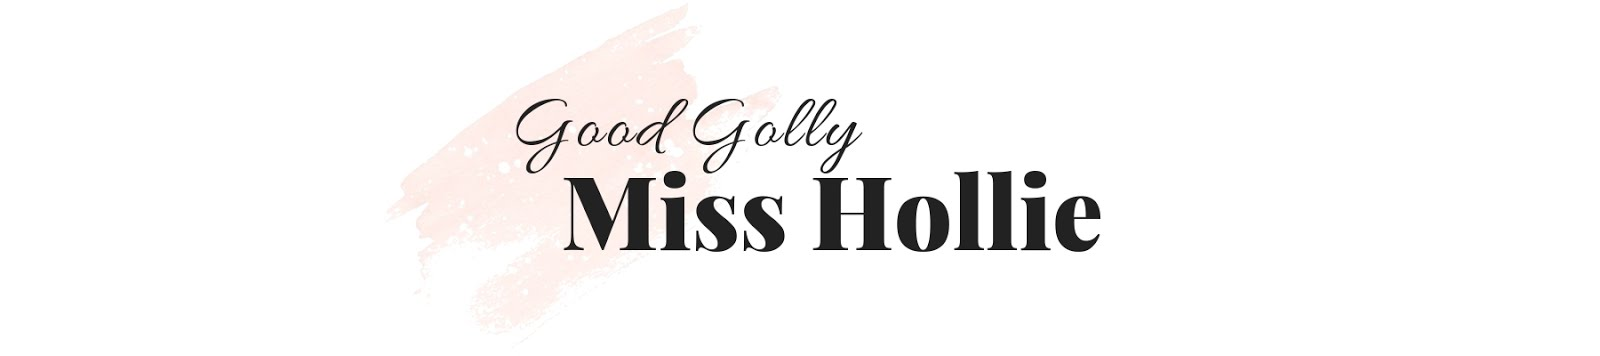 Good Golly Miss Hollie |  Beauty Reviews & Lifestyle